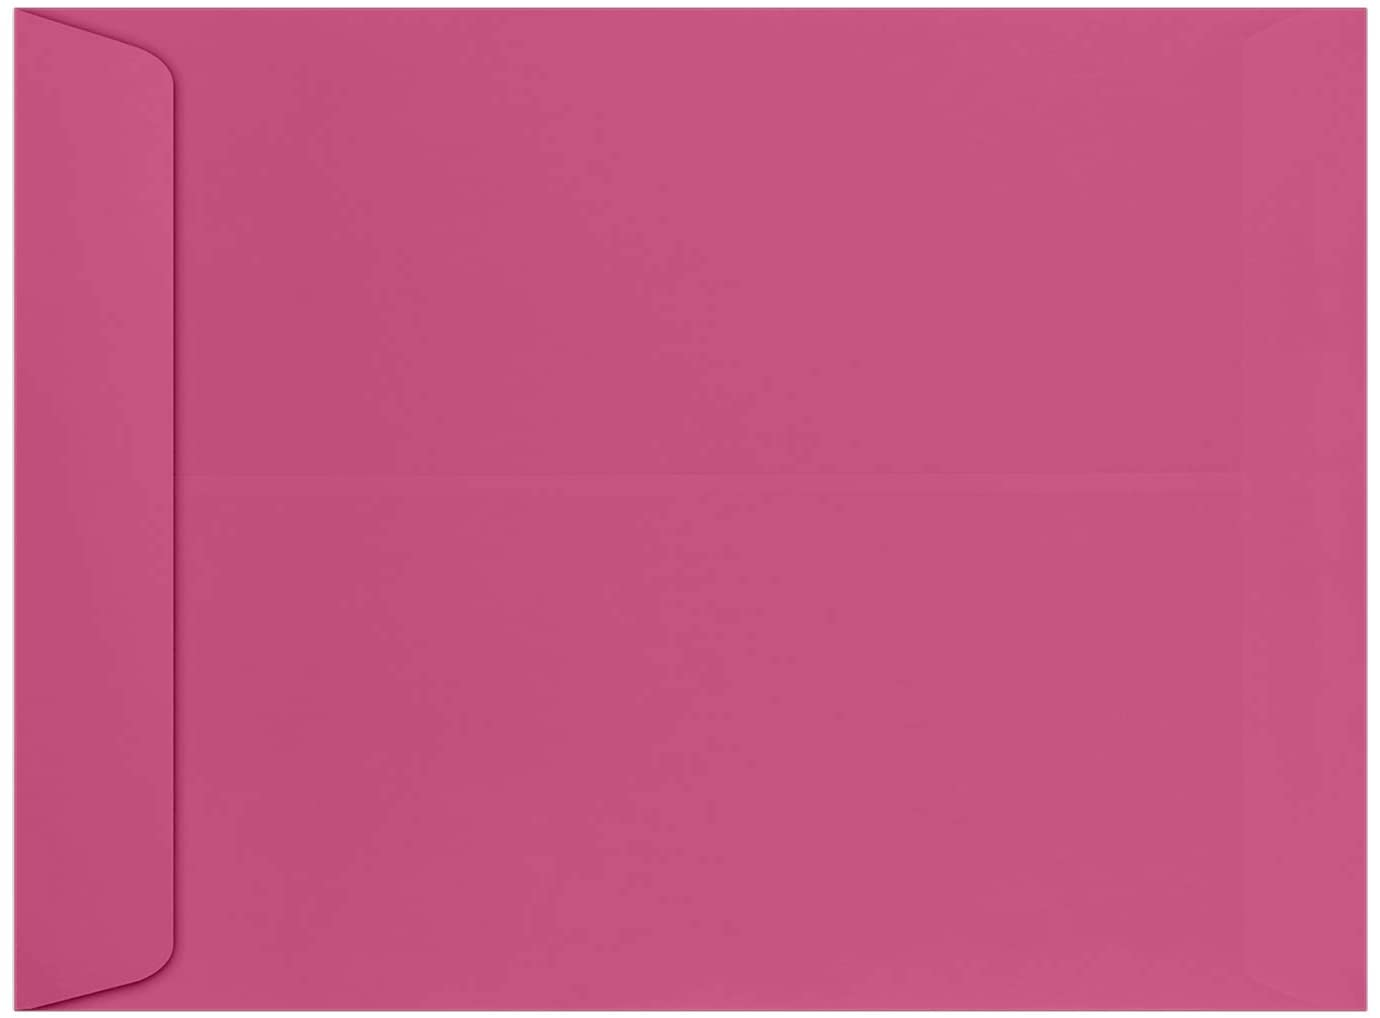 9 x 12 Open-End Envelopes in 80 lb. Magenta for Mailing a Business Letter, Catalog, Financial Document, Magazine, Pamphlet, 500 Pack (Pink)